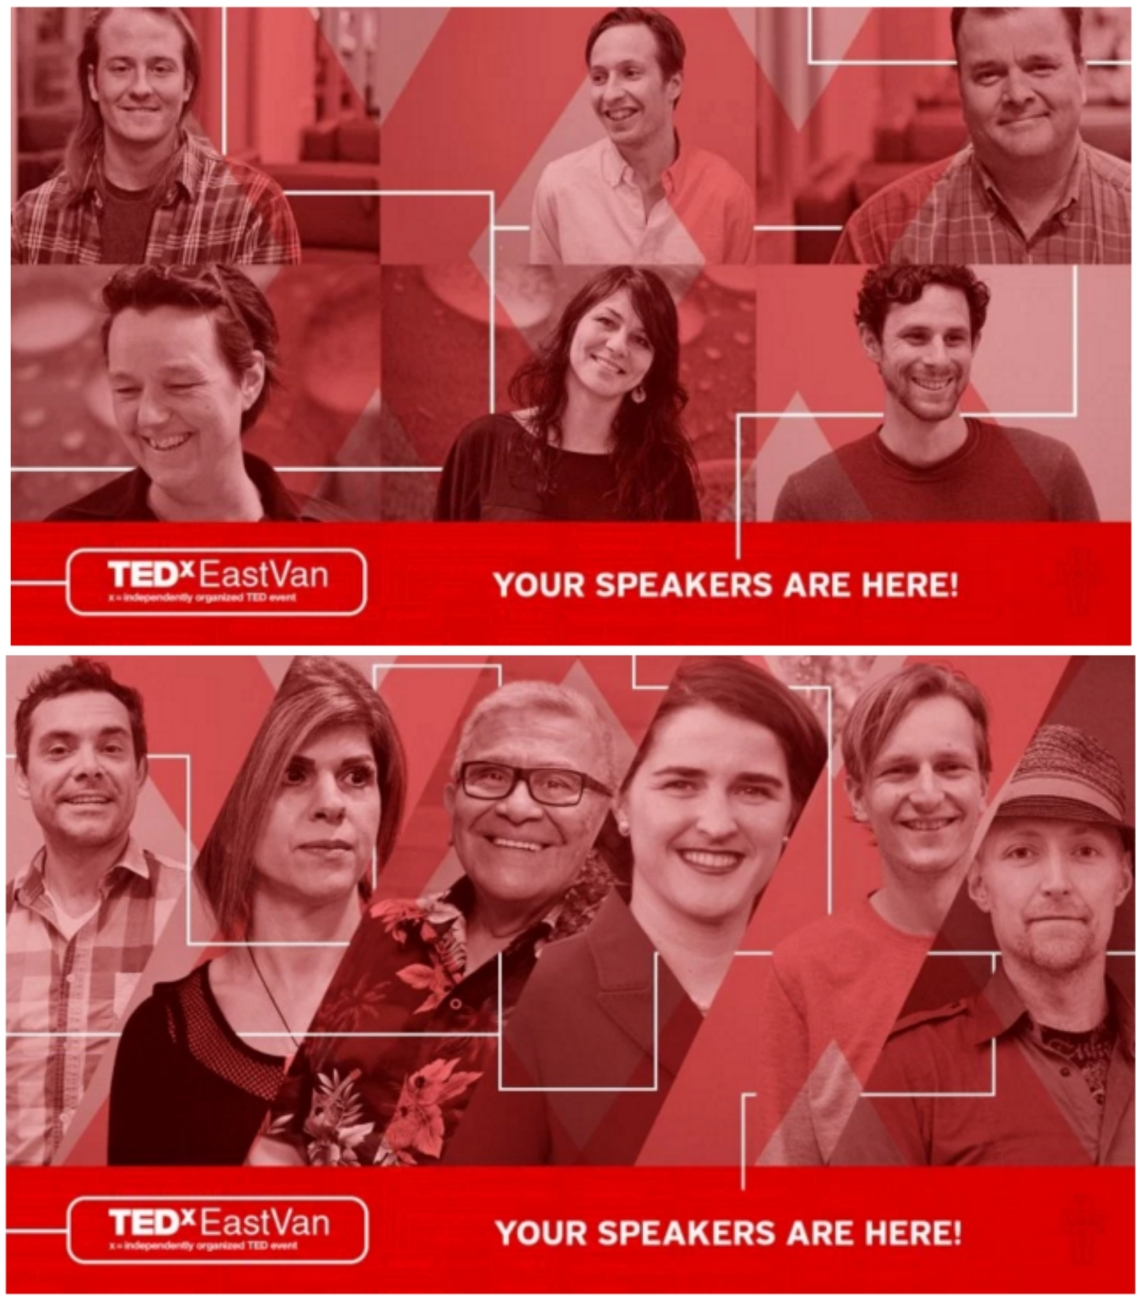 The Tedxeastvan speakers - April 23, 2016 in Vancouver, BC Canada